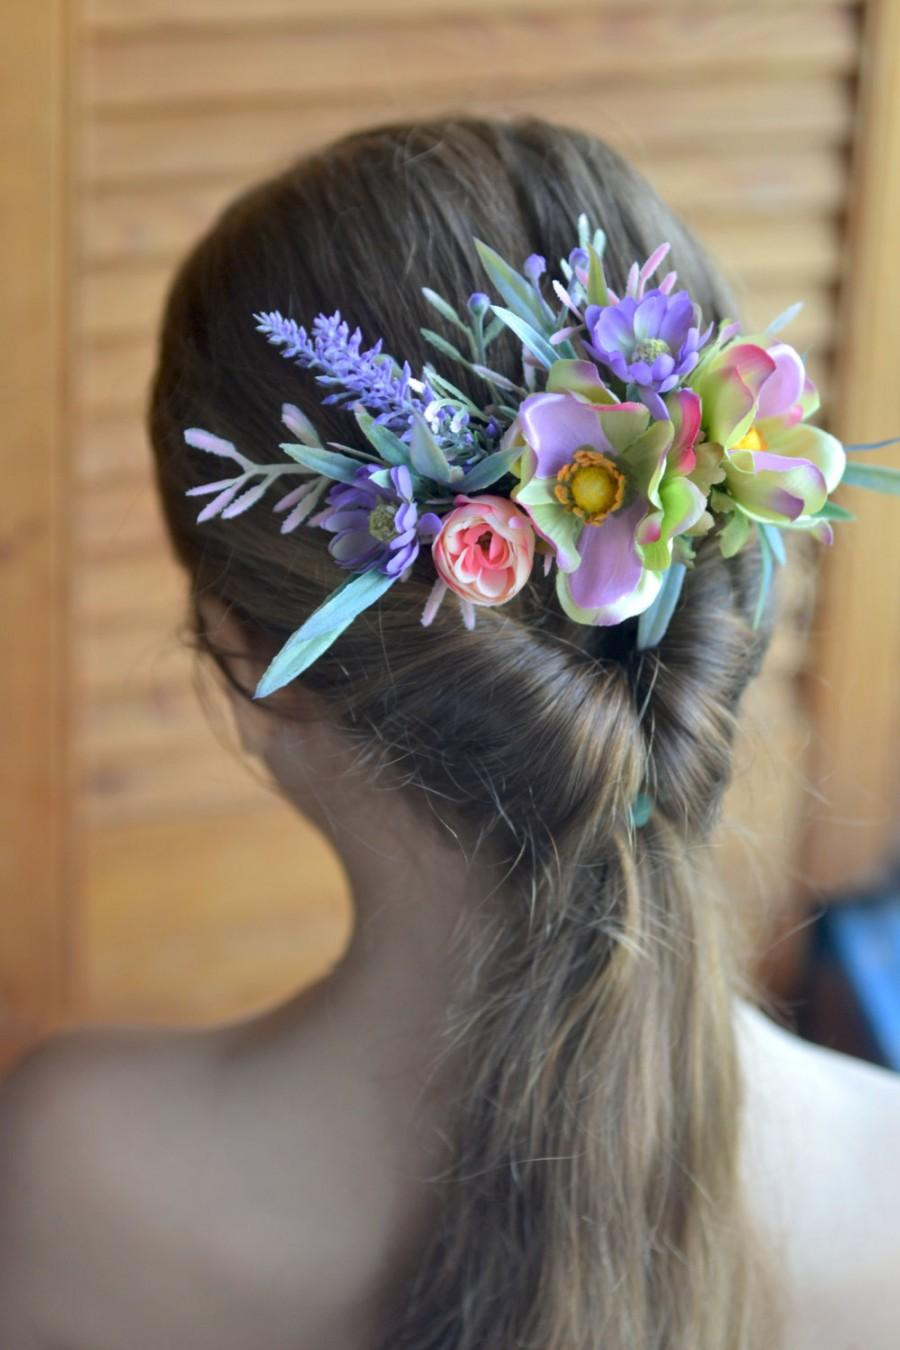 Purple floral comb lavender anemone comb bridal flower headpiece purple floral comb lavender anemone comb bridal flower headpiece wedding flower comb silk flower back hair dress floral hair accessory mightylinksfo